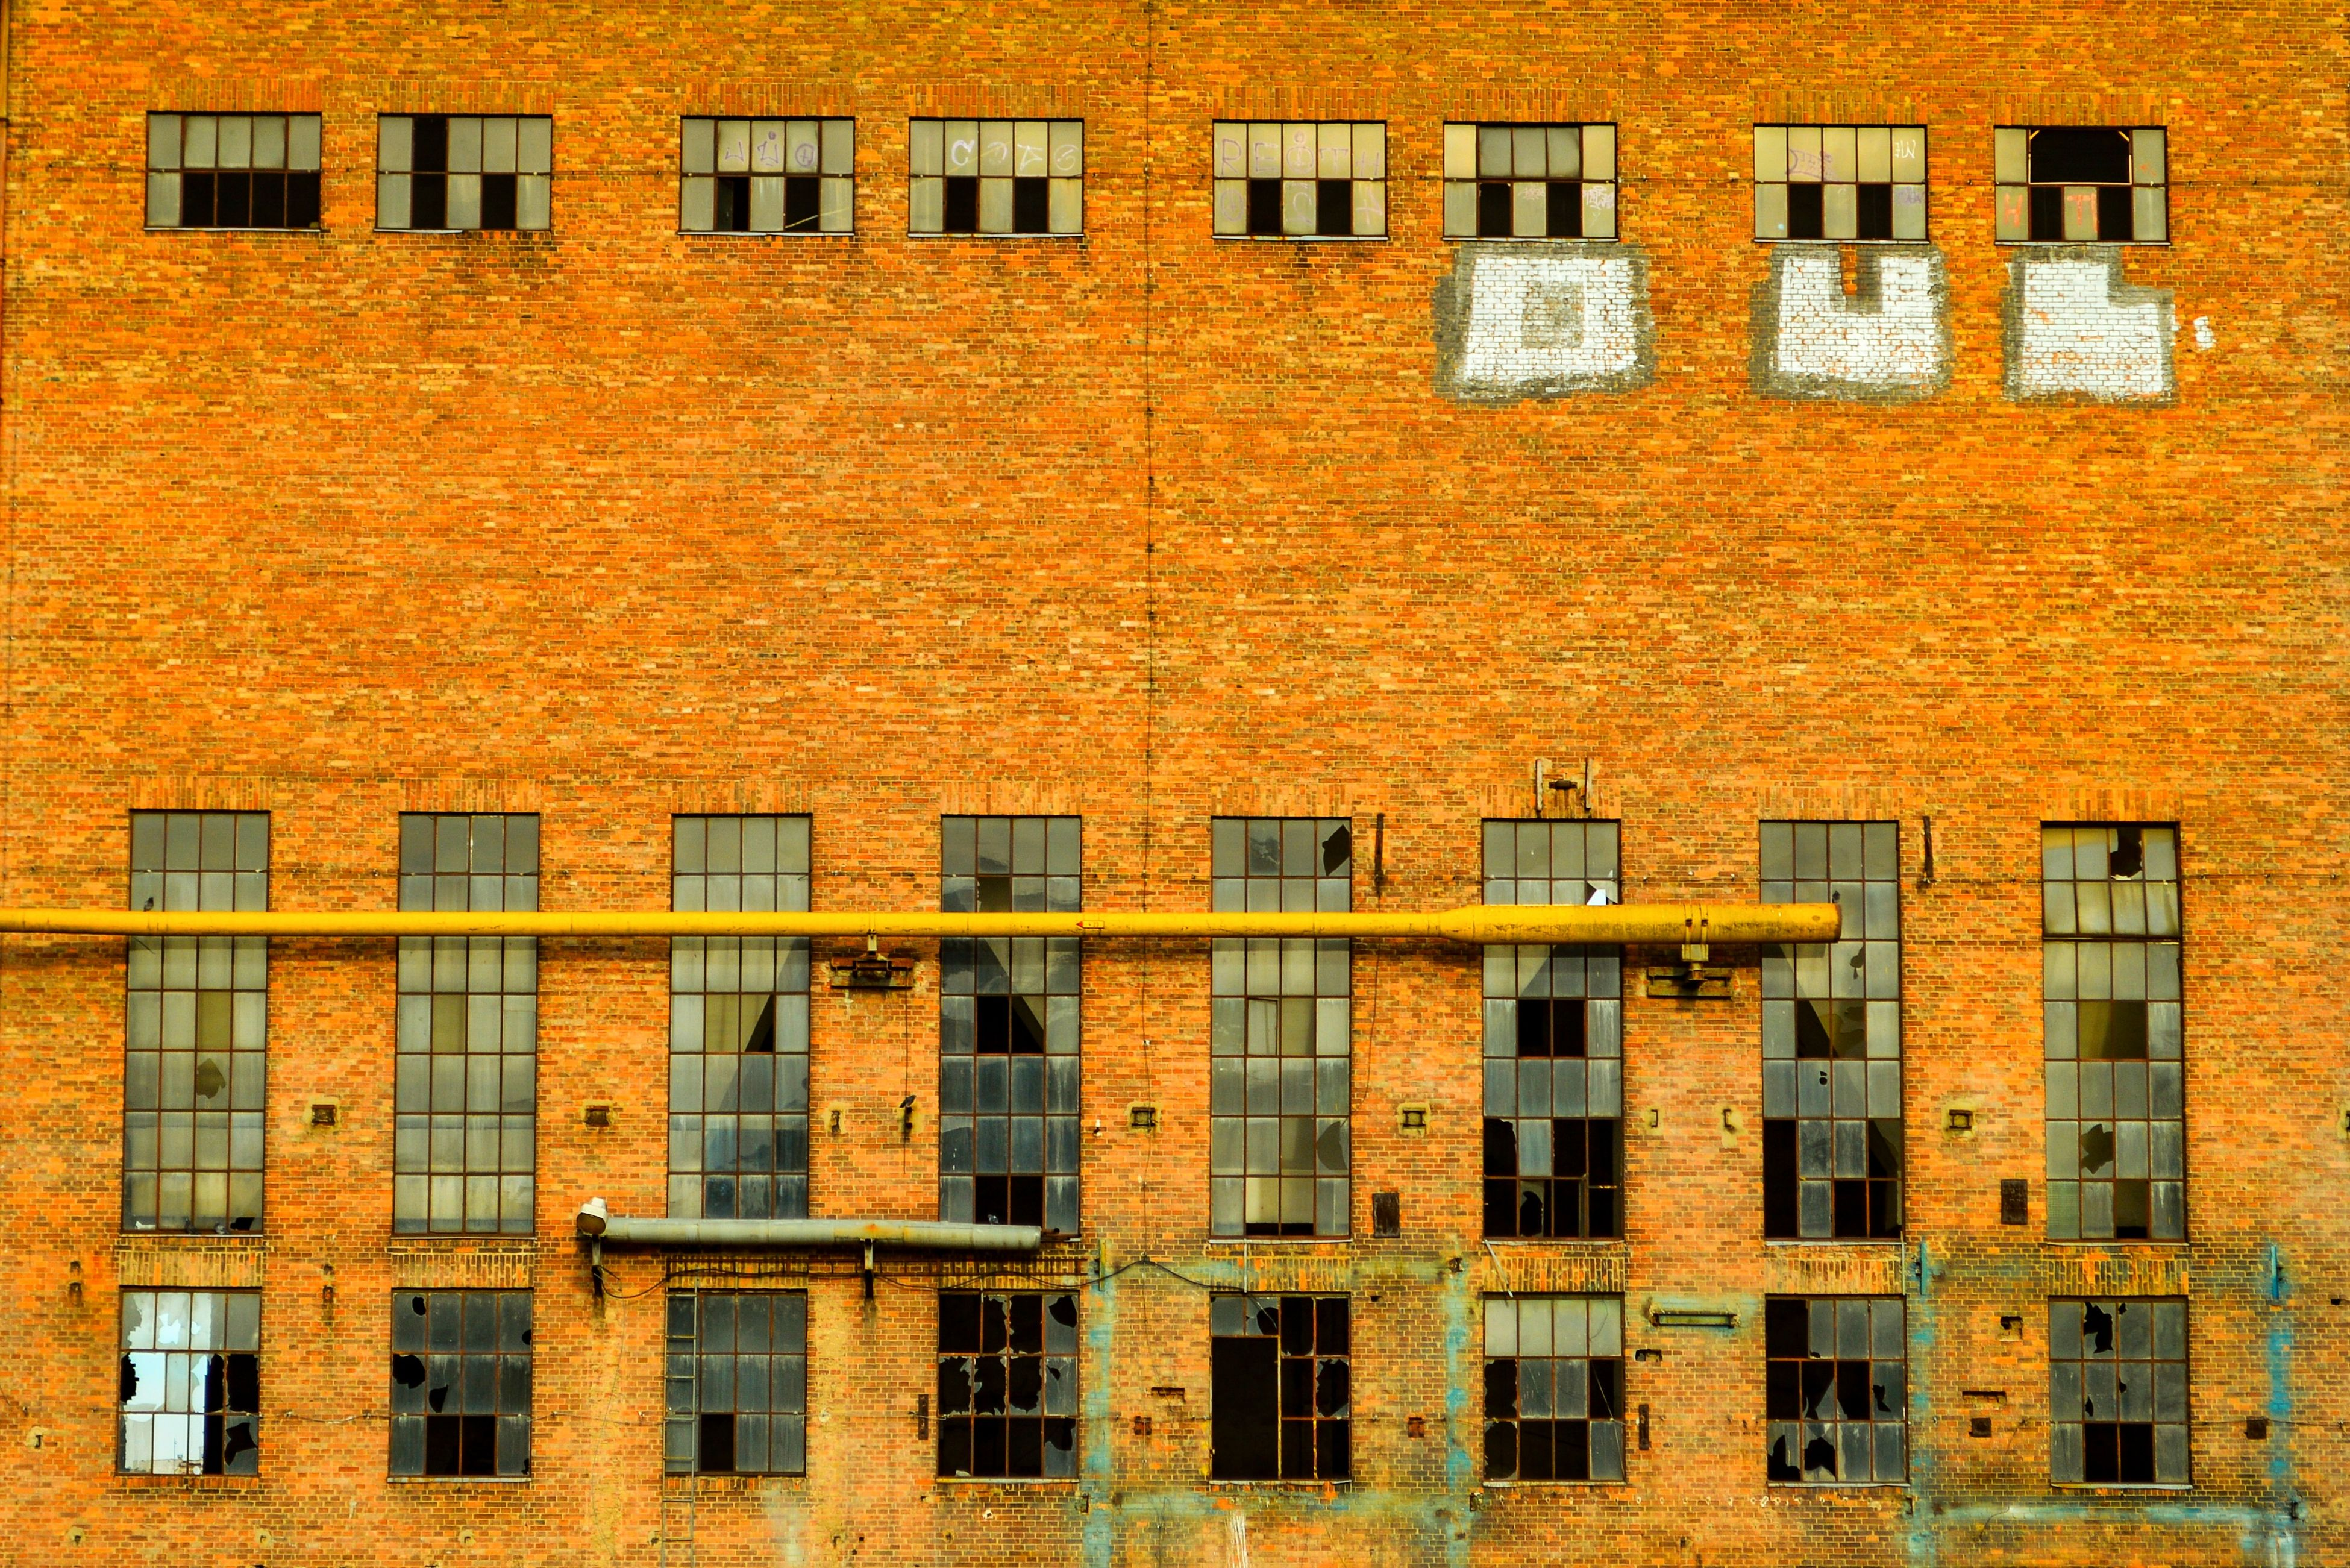 building exterior, built structure, architecture, city, outdoors, brick wall, residential building, no people, day